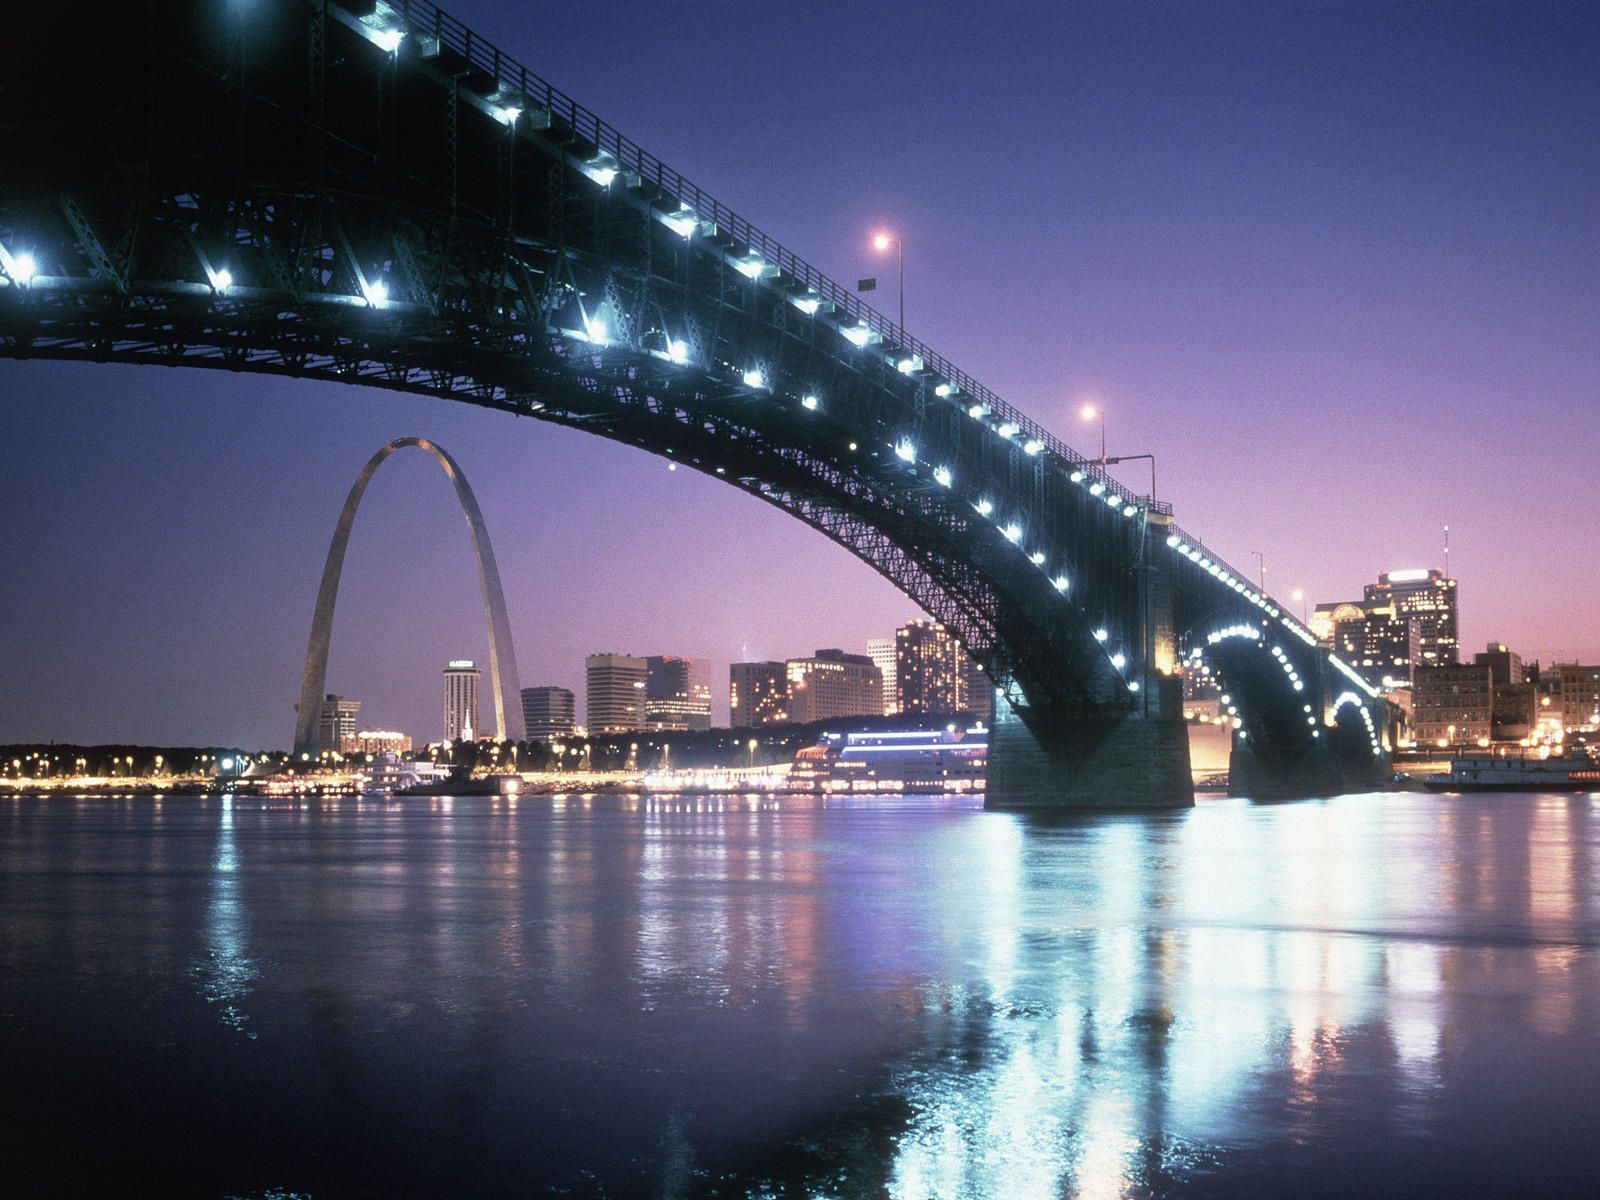 St Louis Missouri The Photography Wallpaper Named